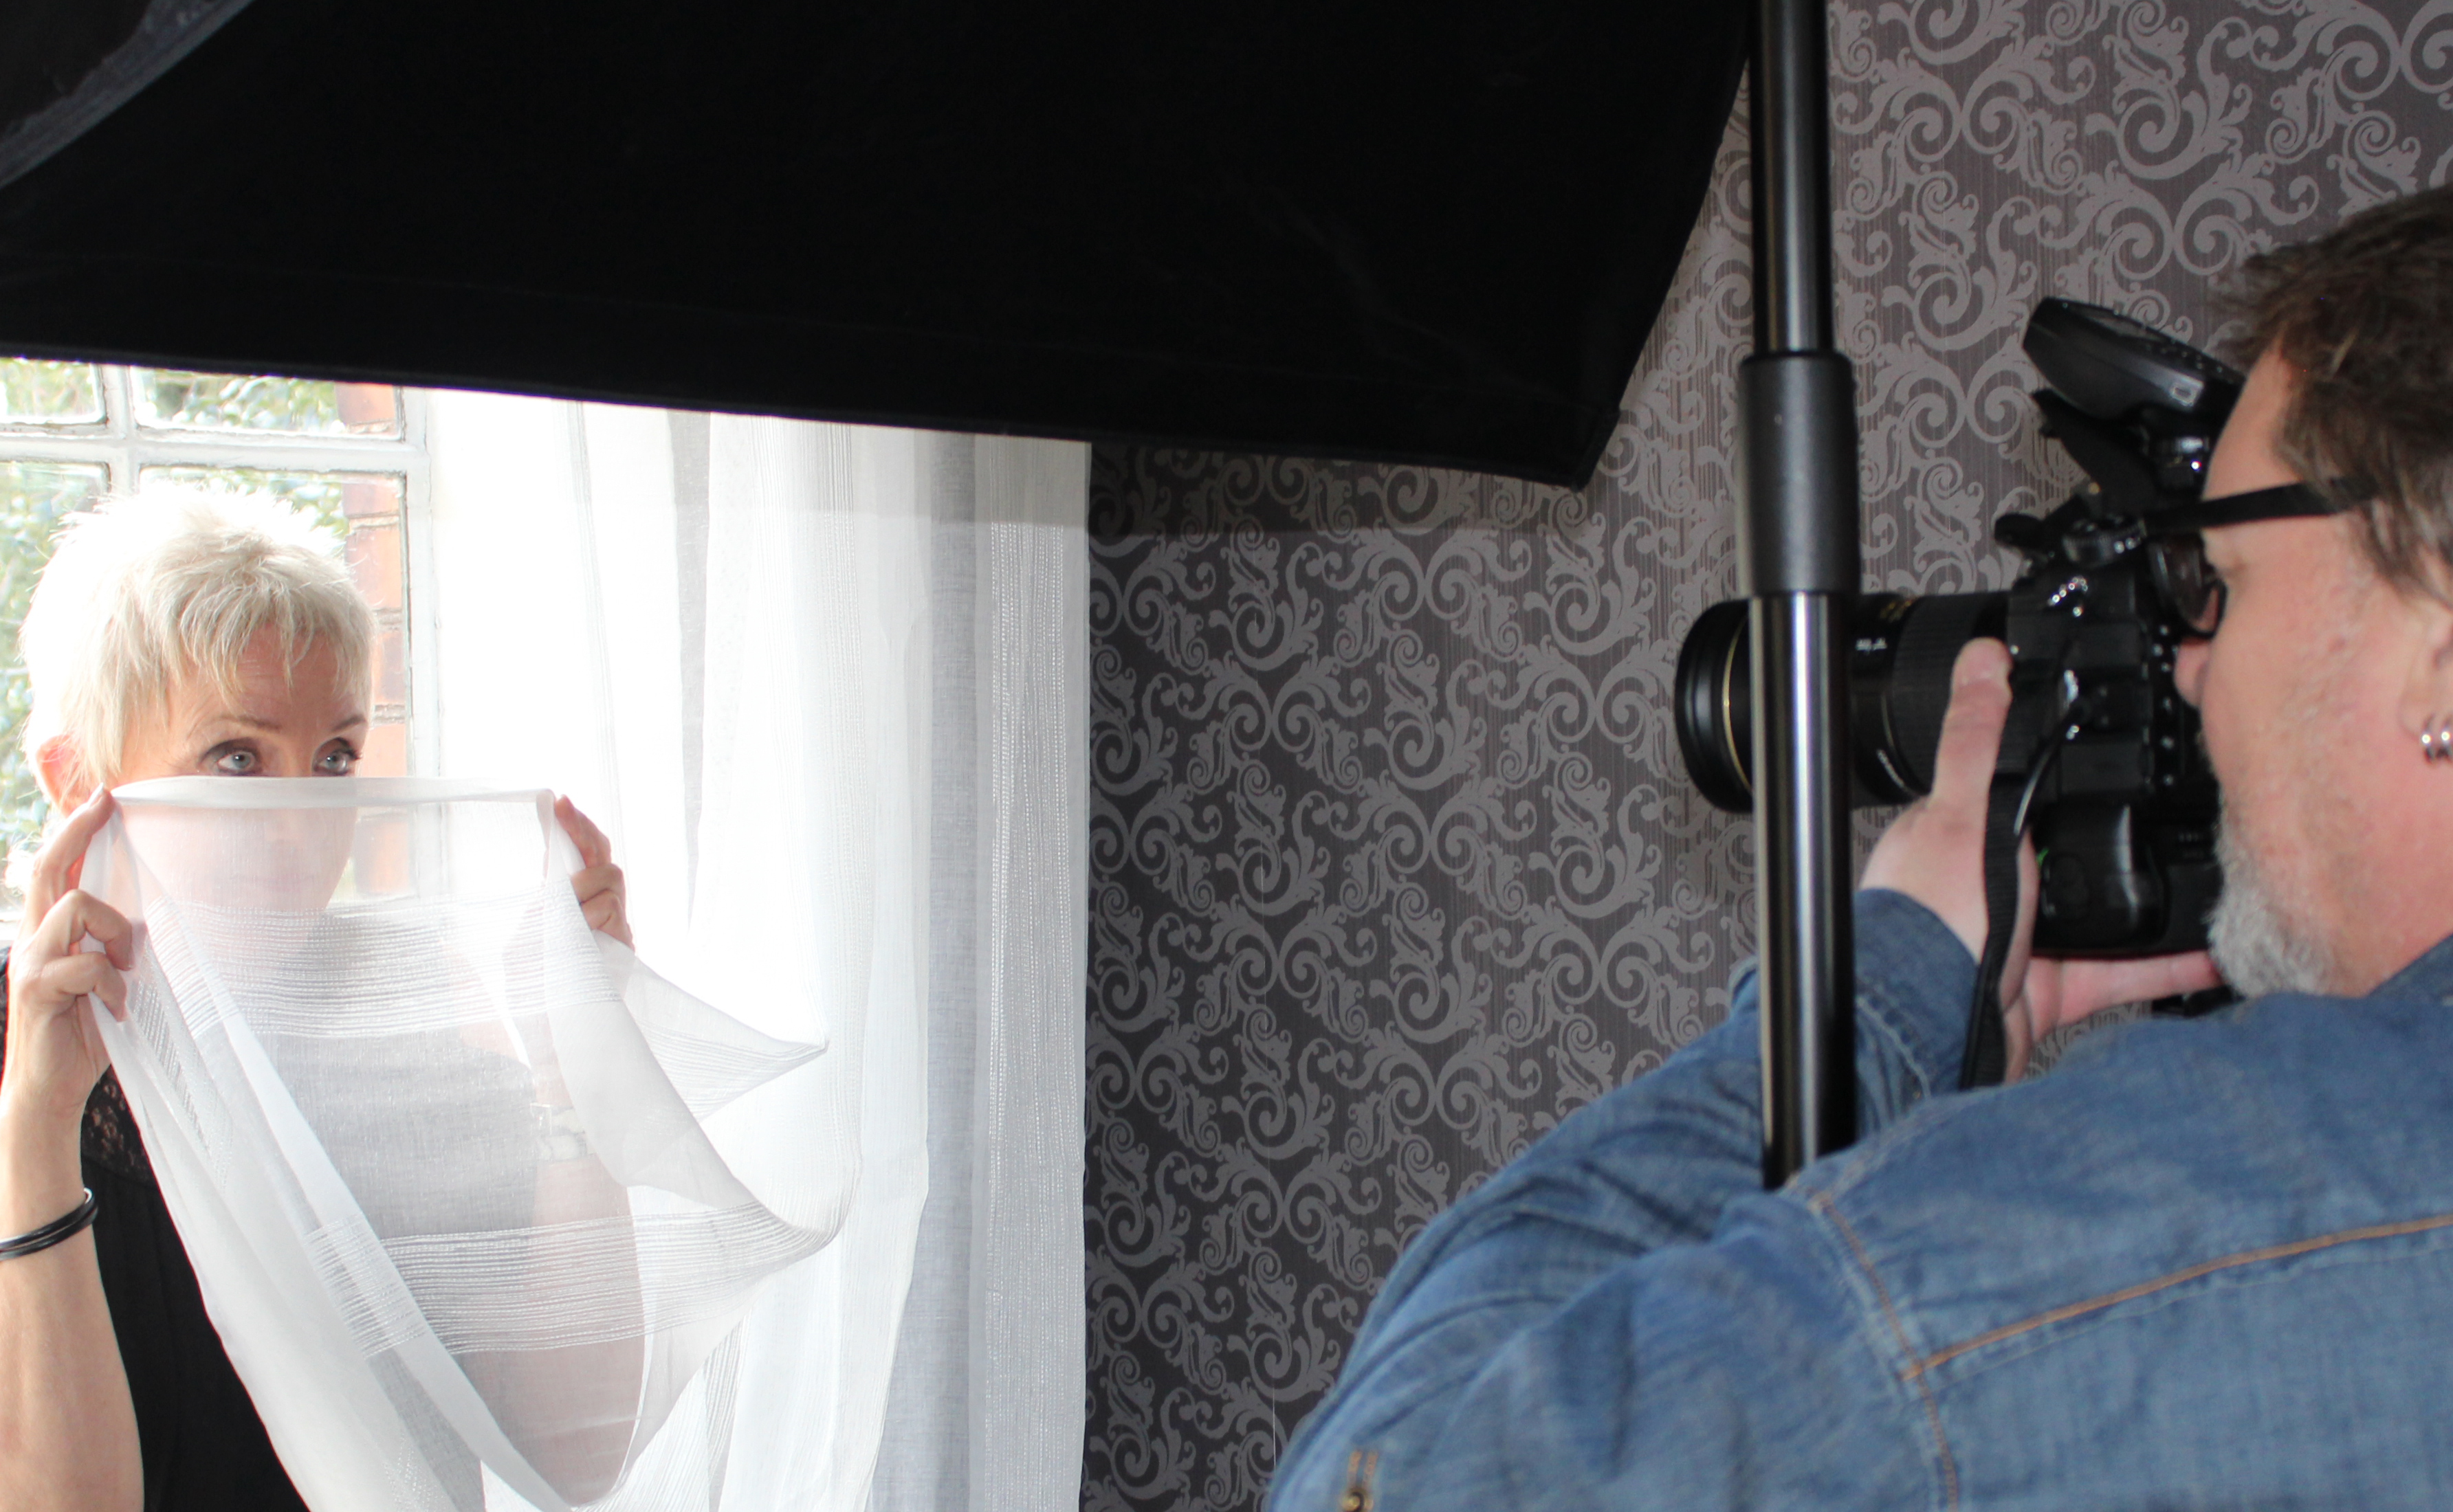 Fotosessions Alex Nyborg Madsen - Behind the scenes